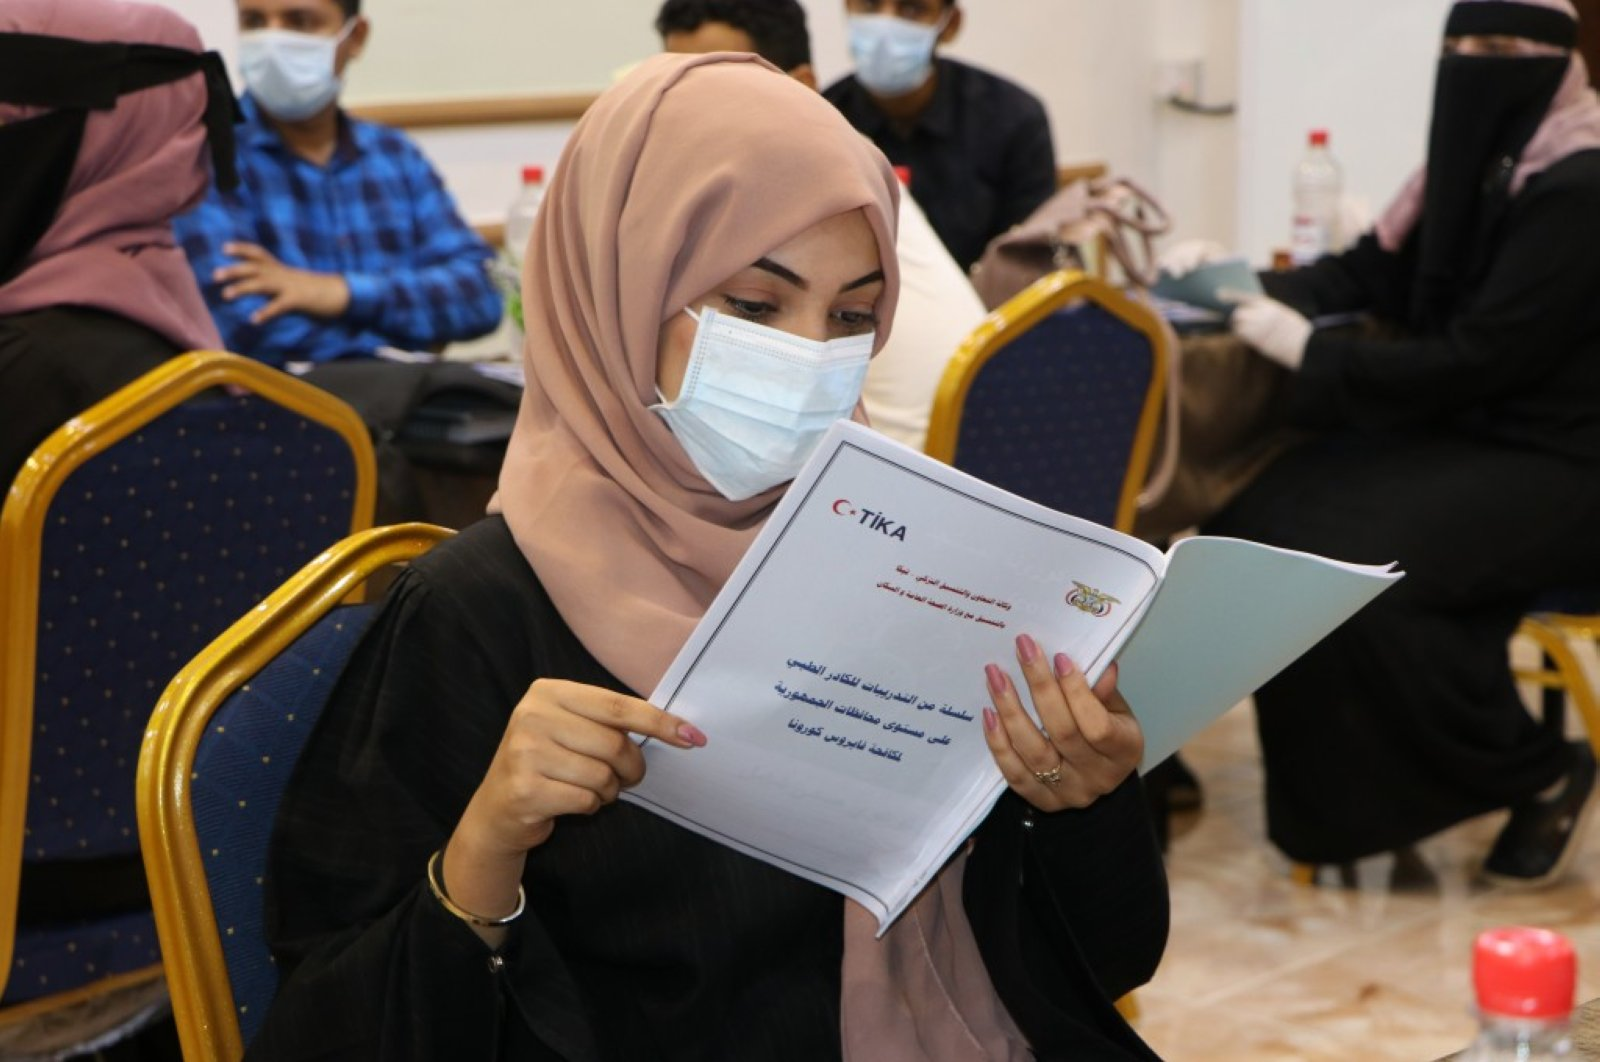 A trainee reads a pamphlet during a training session at the workshop in Aden, Yemen, Monday, April 6, 2020. (COURTESY OF TİKA)